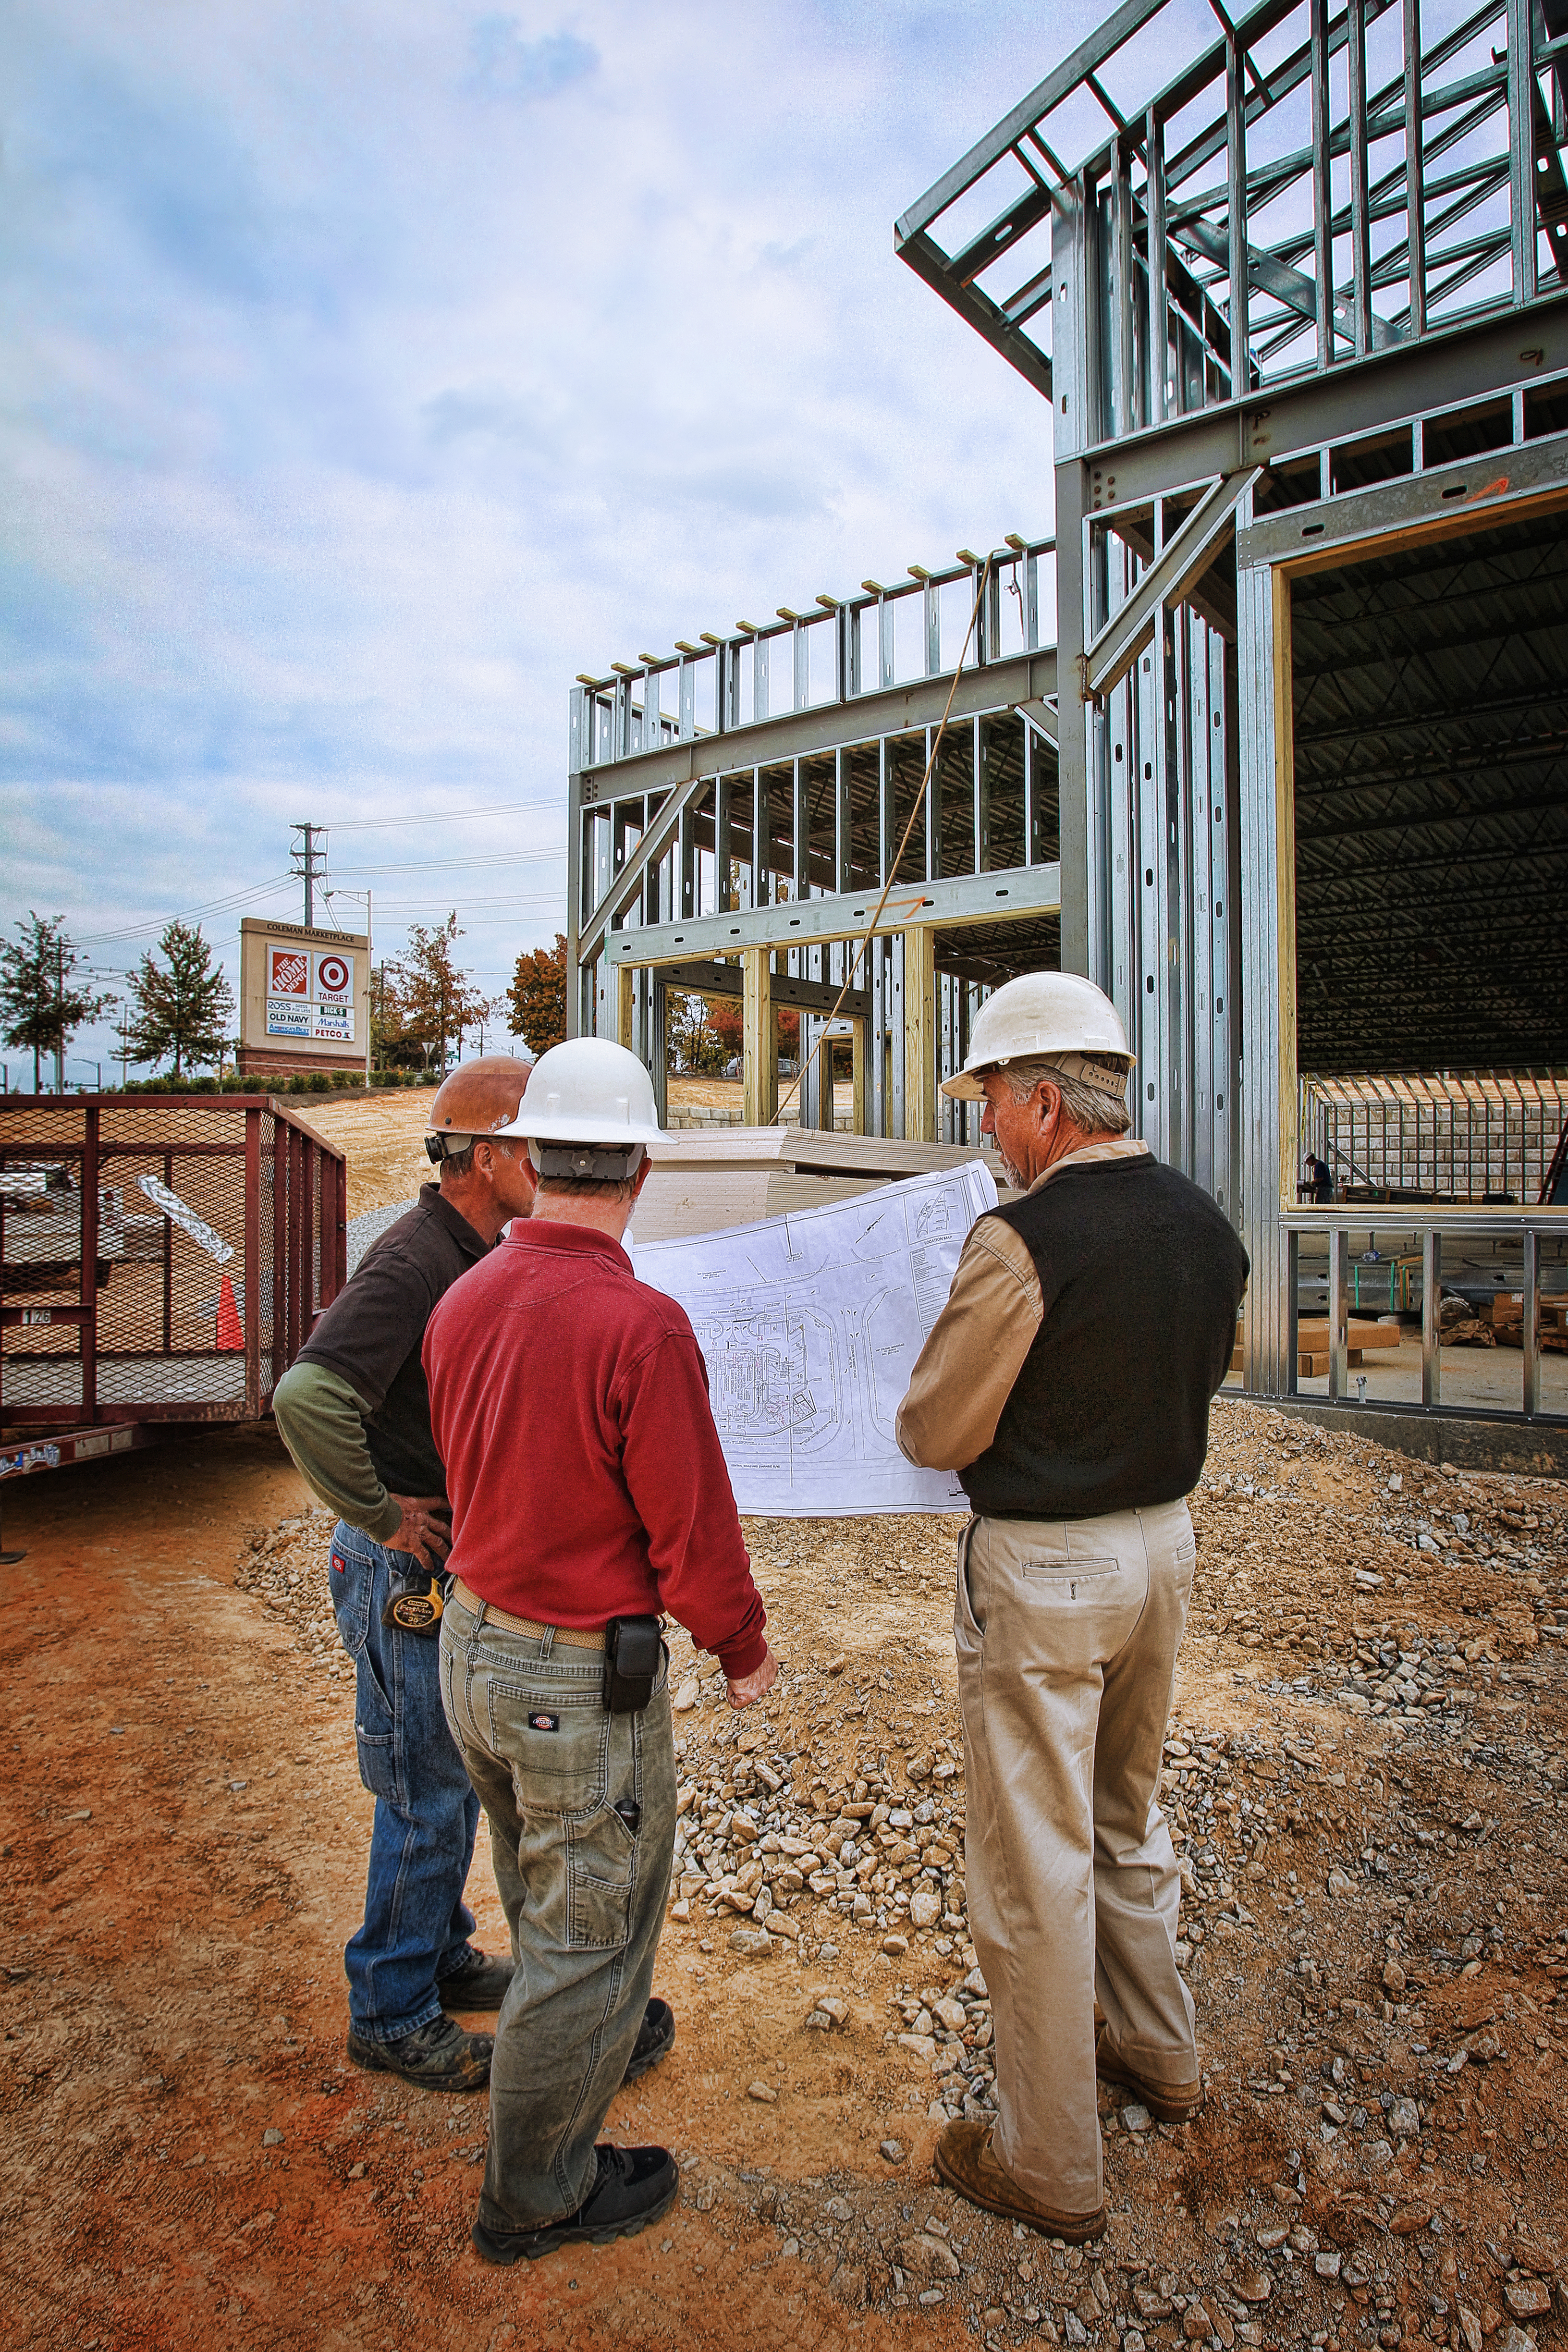 Three Men Examining Building Plans near a Construction Site